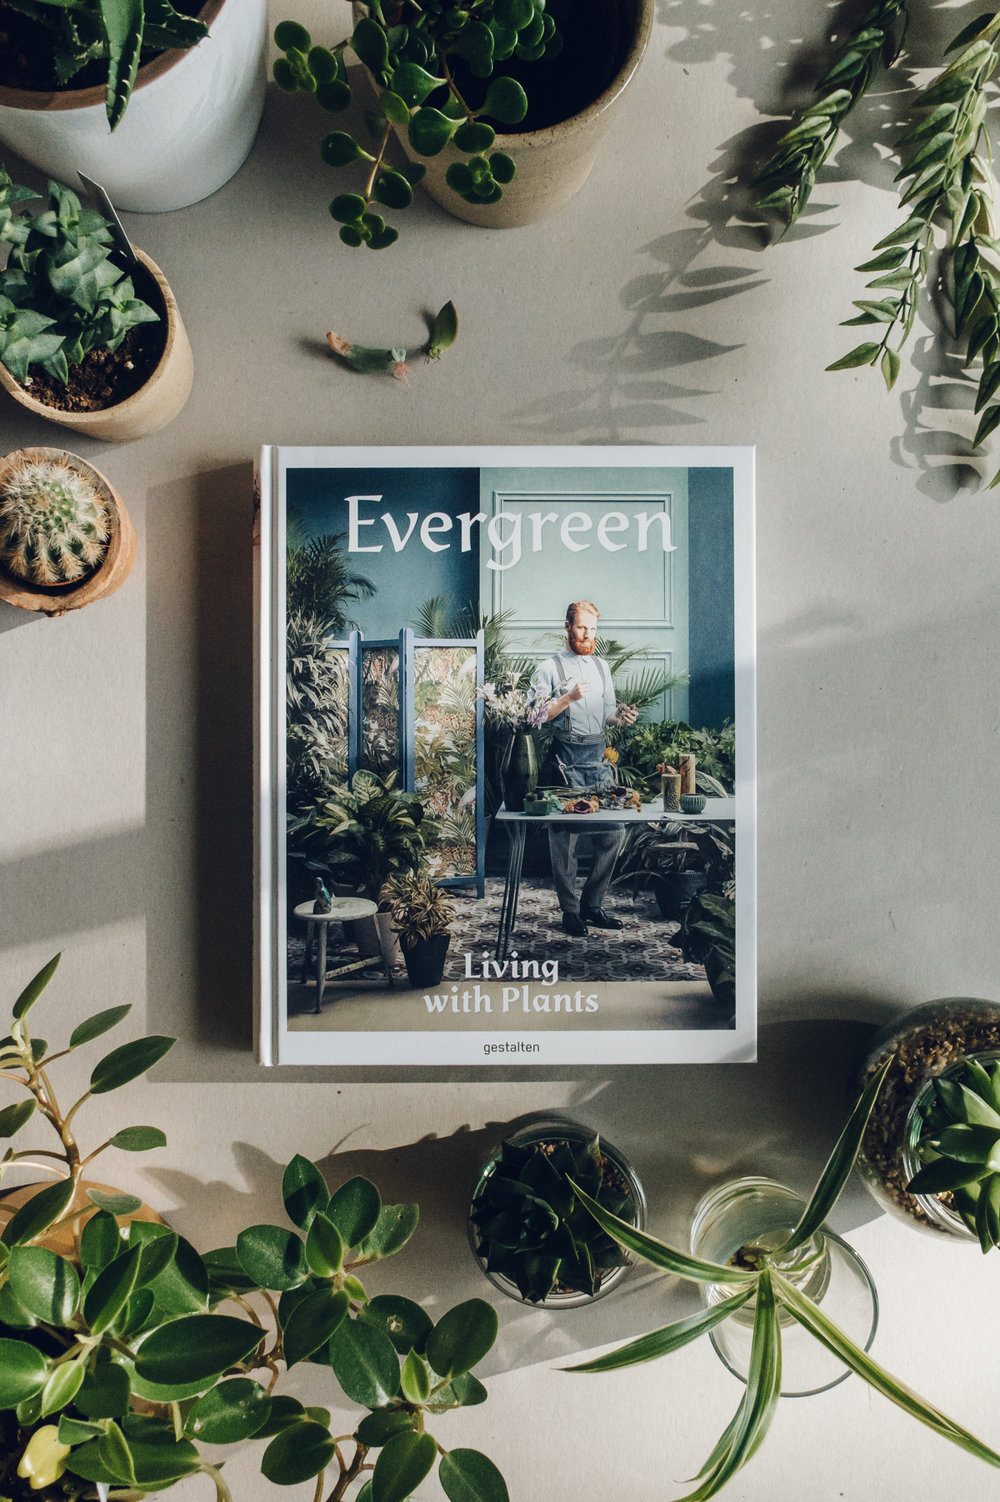 Evergreen: Living with Plants book by Gestalten